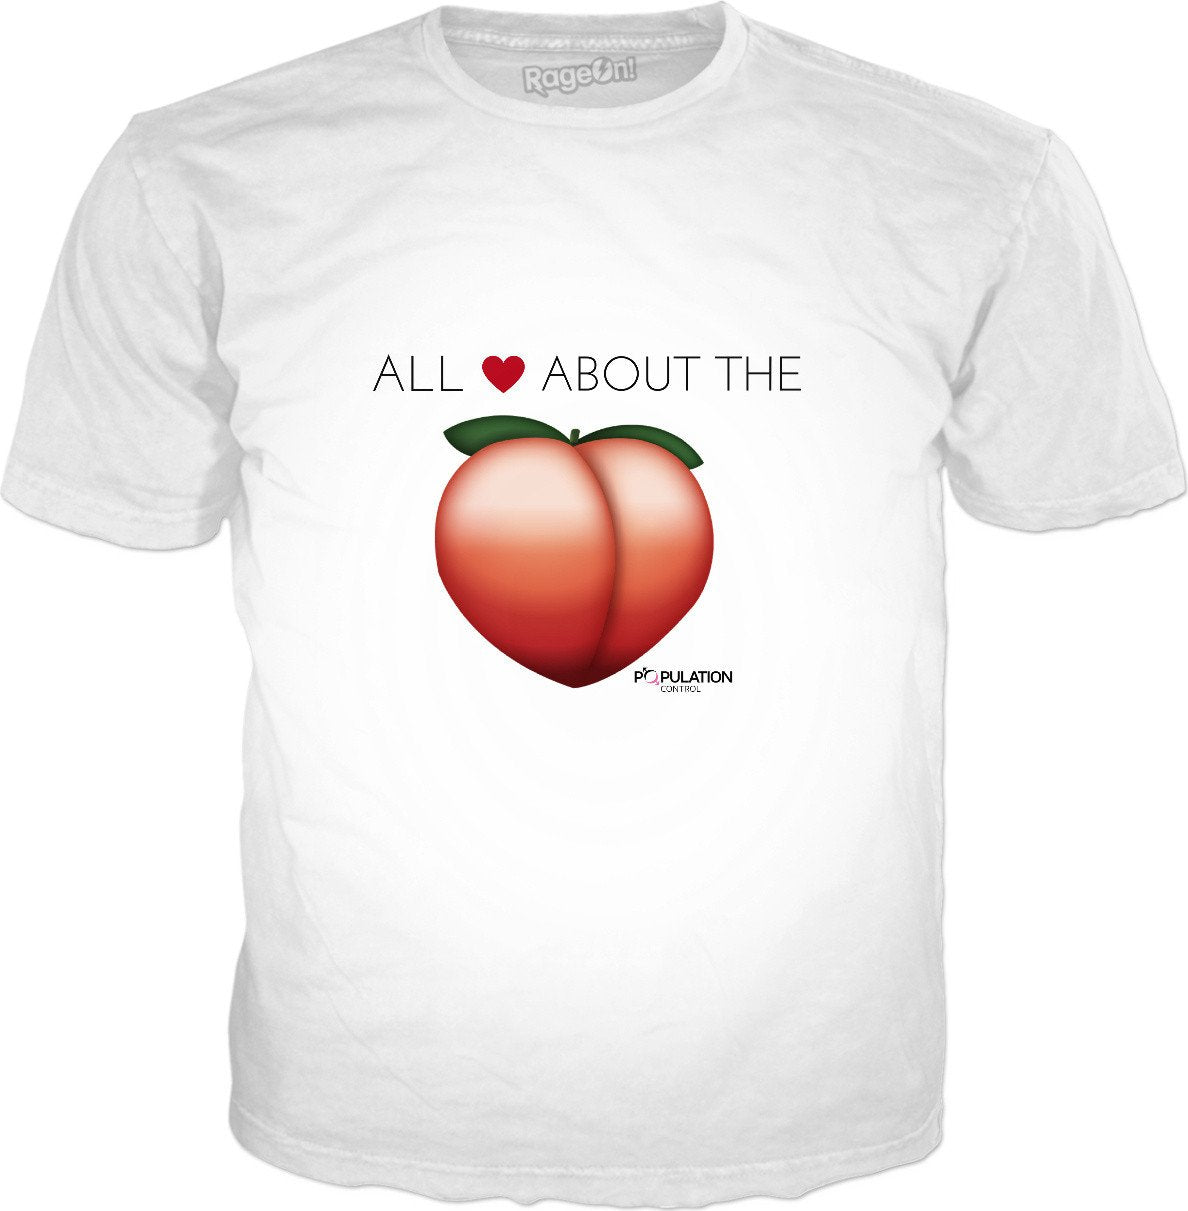 ALL ABOUT THE - TShirtsRUS.co